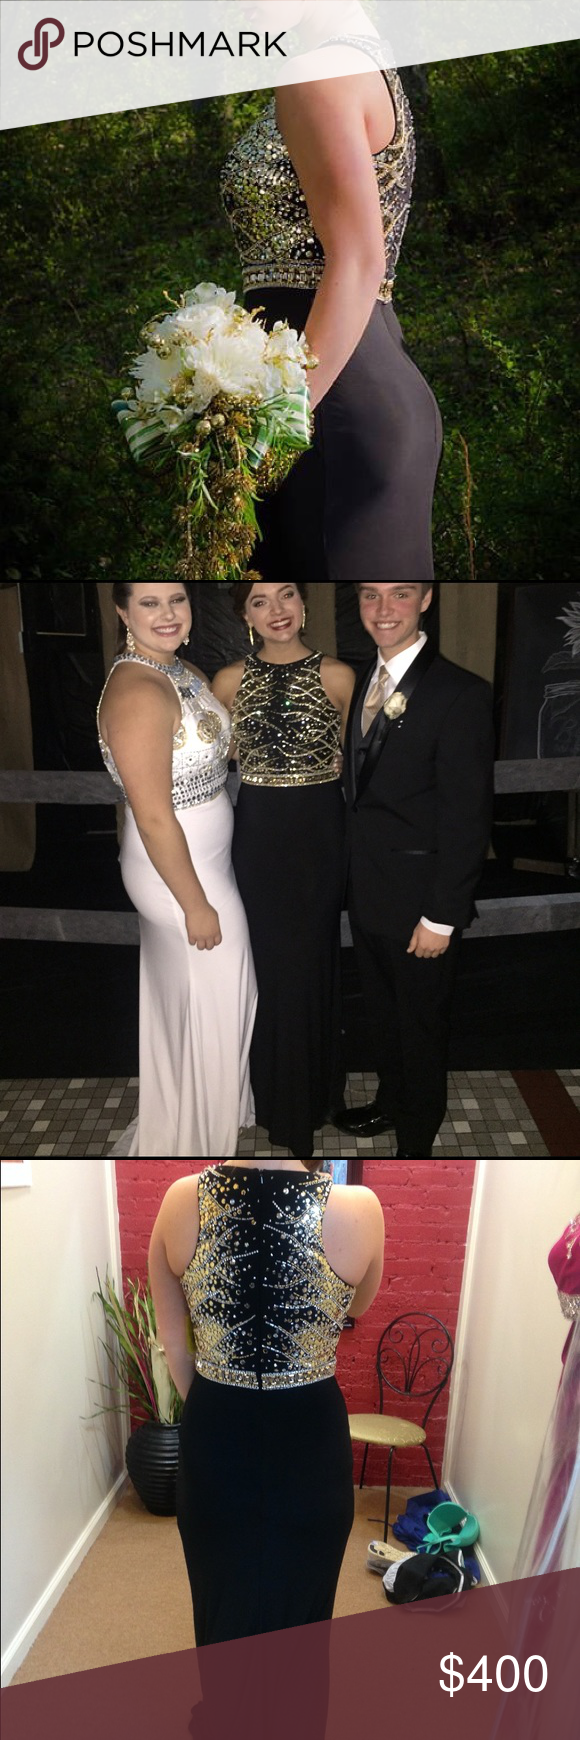 Black and gold prom dress size gold prom dresses yellow brick